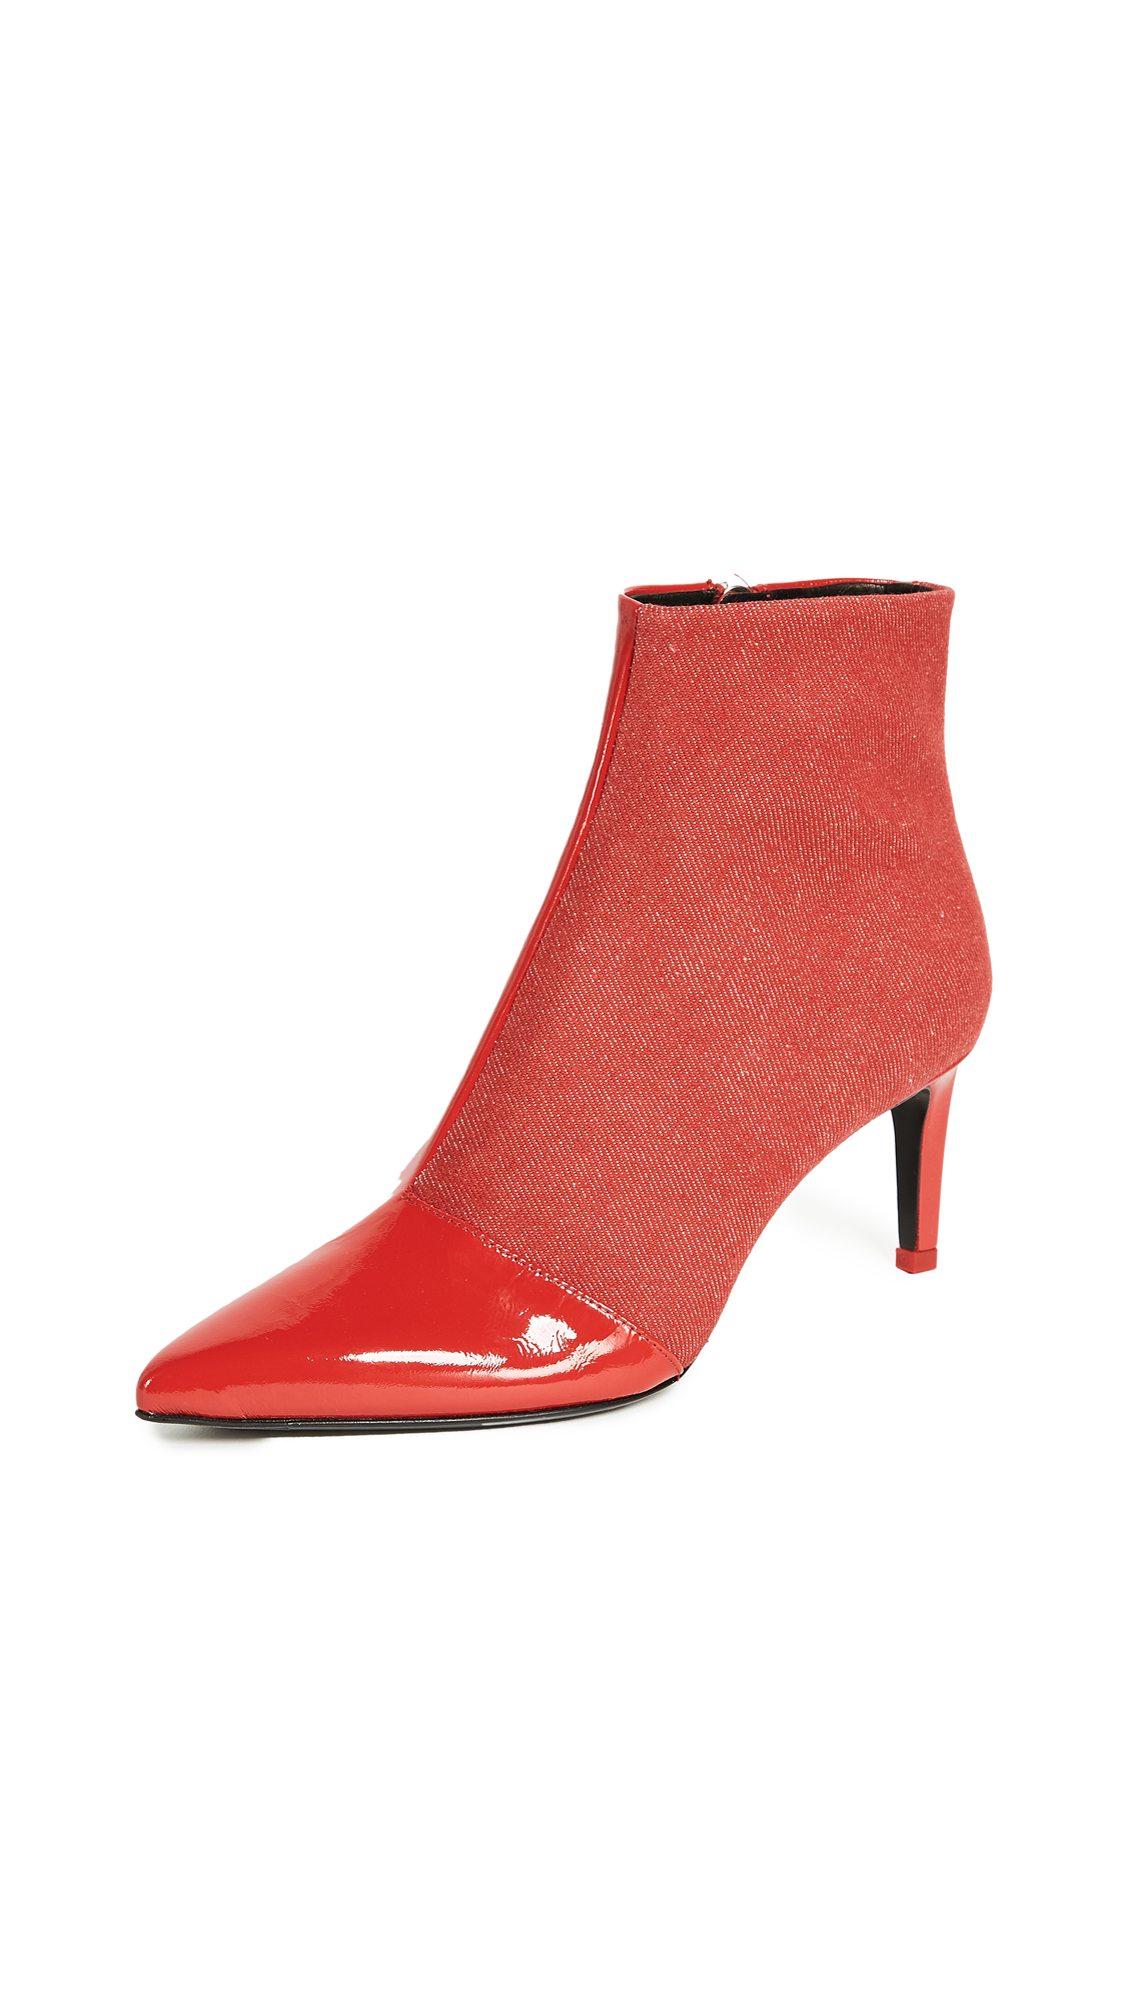 Rag & Bone Beha Booties - Red Denim